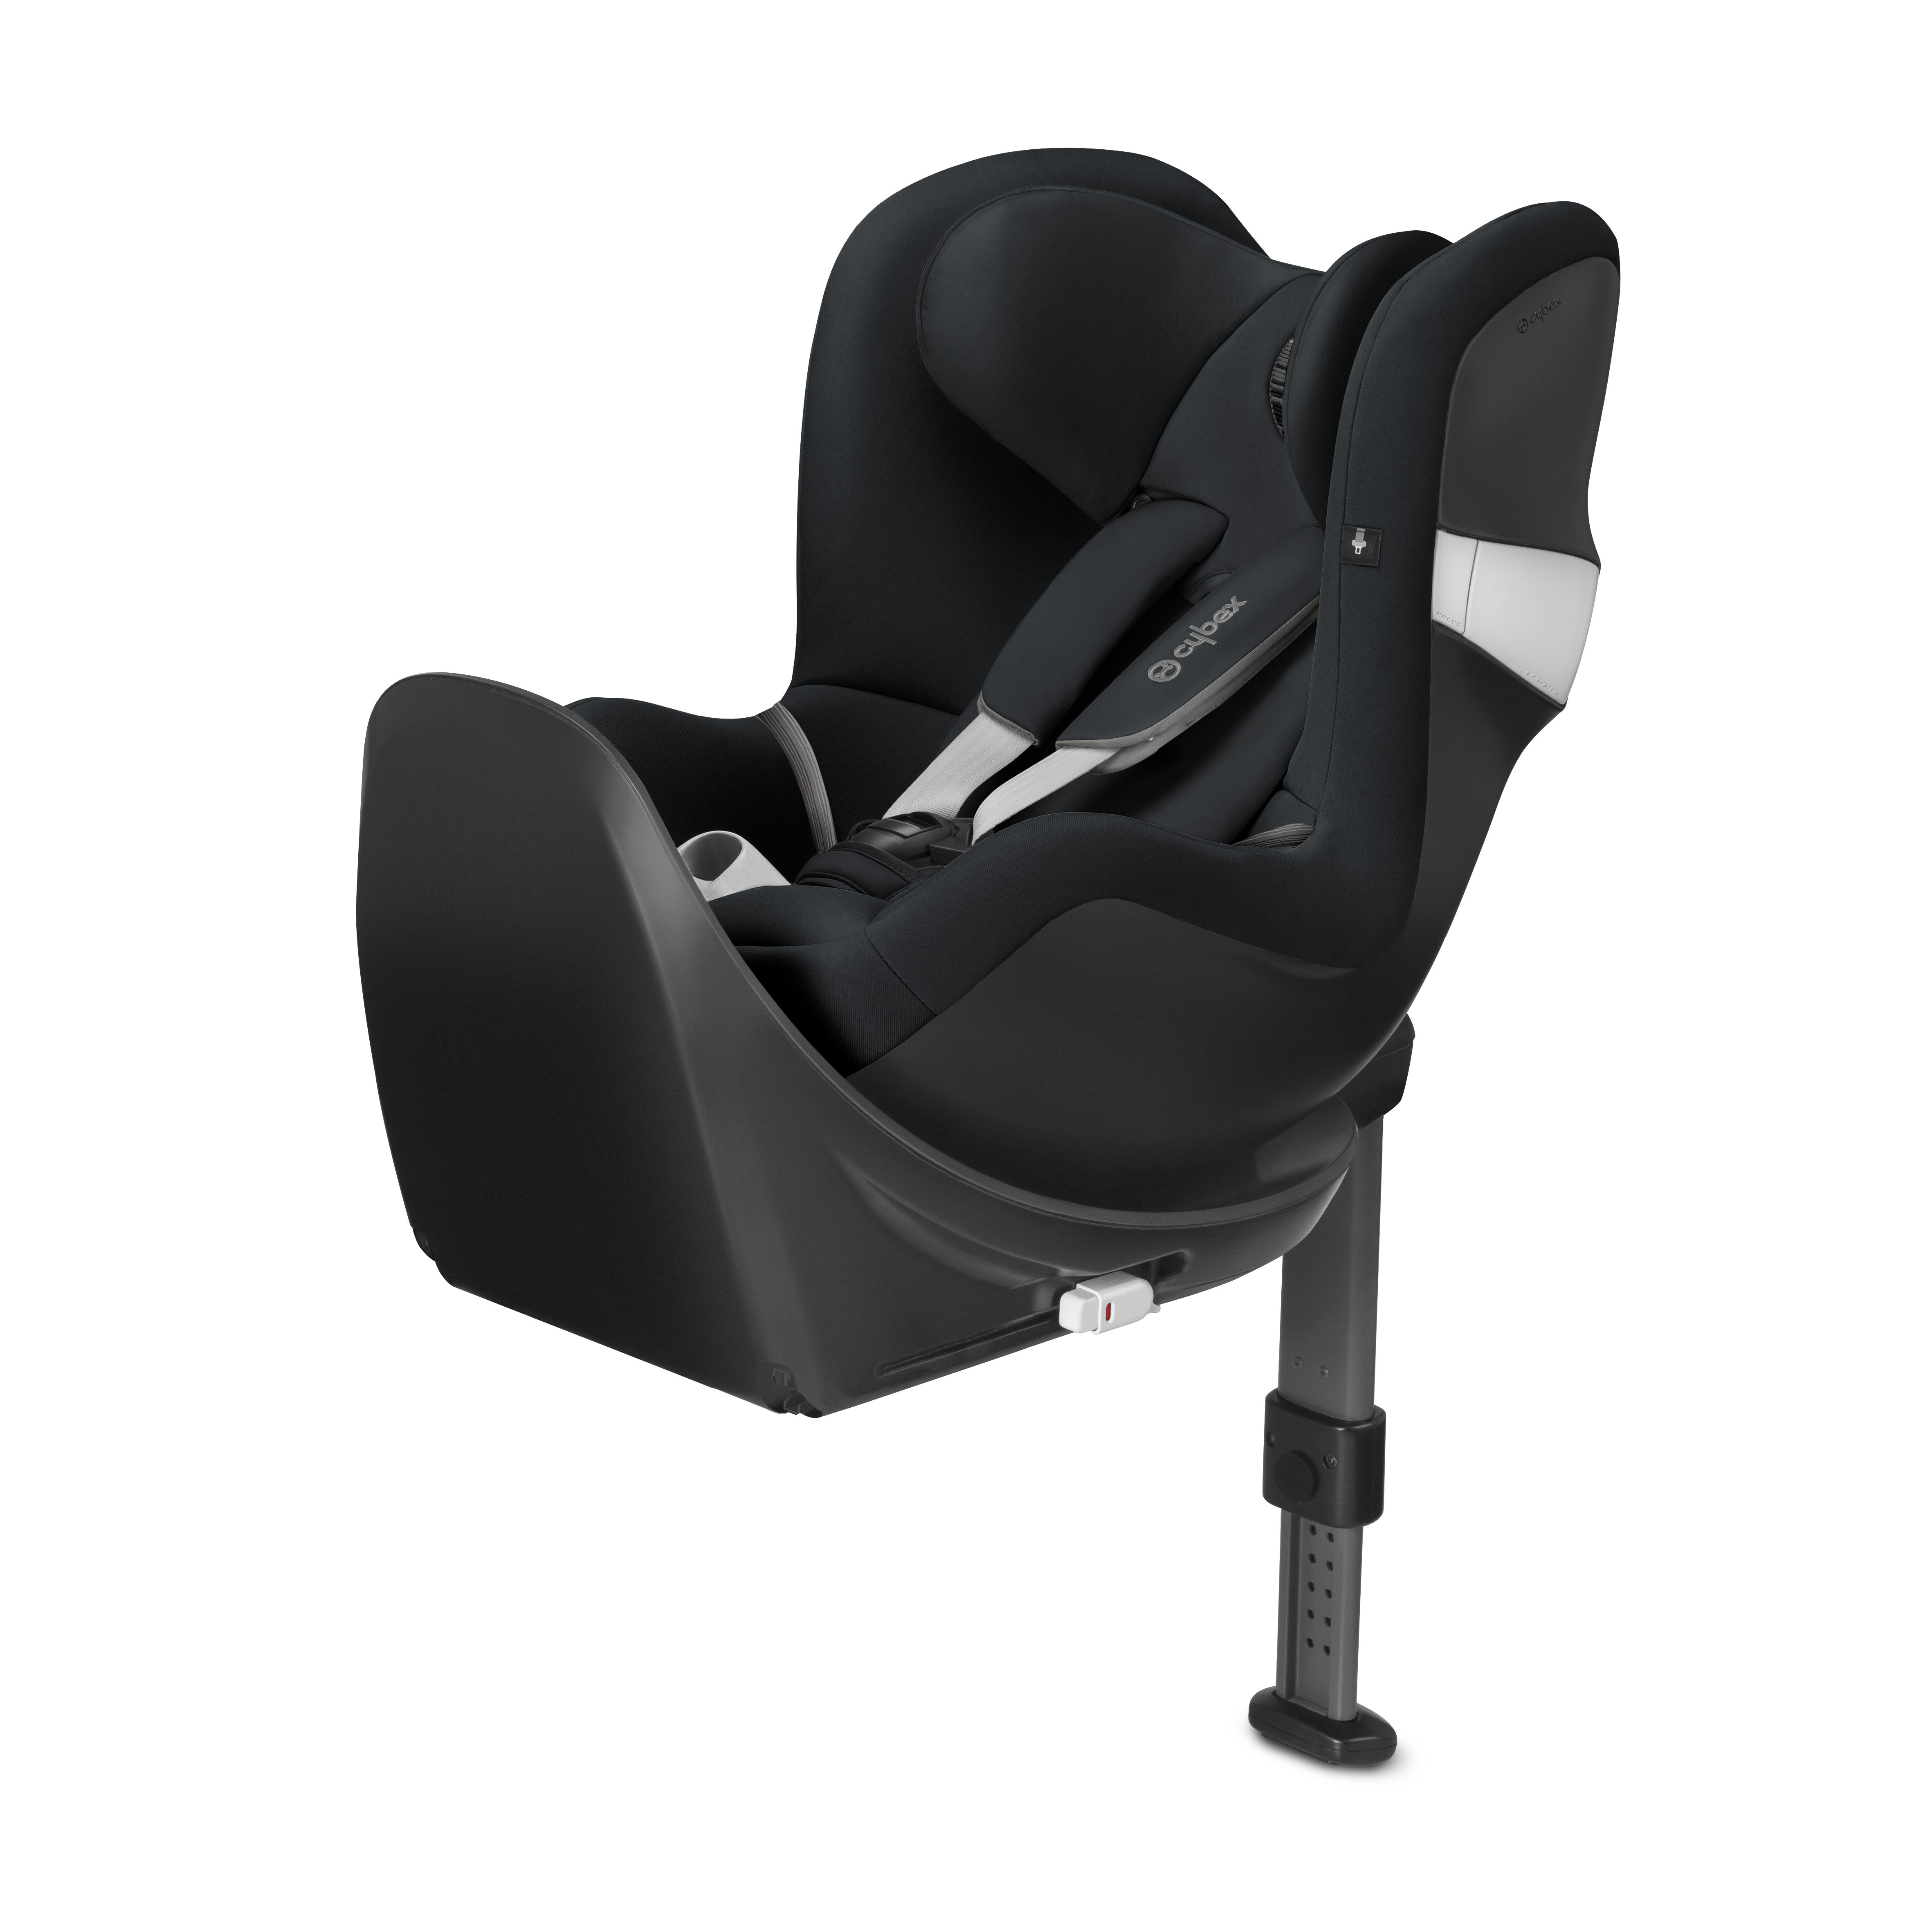 Автокресло Cybex Sirona M2 i-Size и база Base M Lavastone Black, цвет: черный